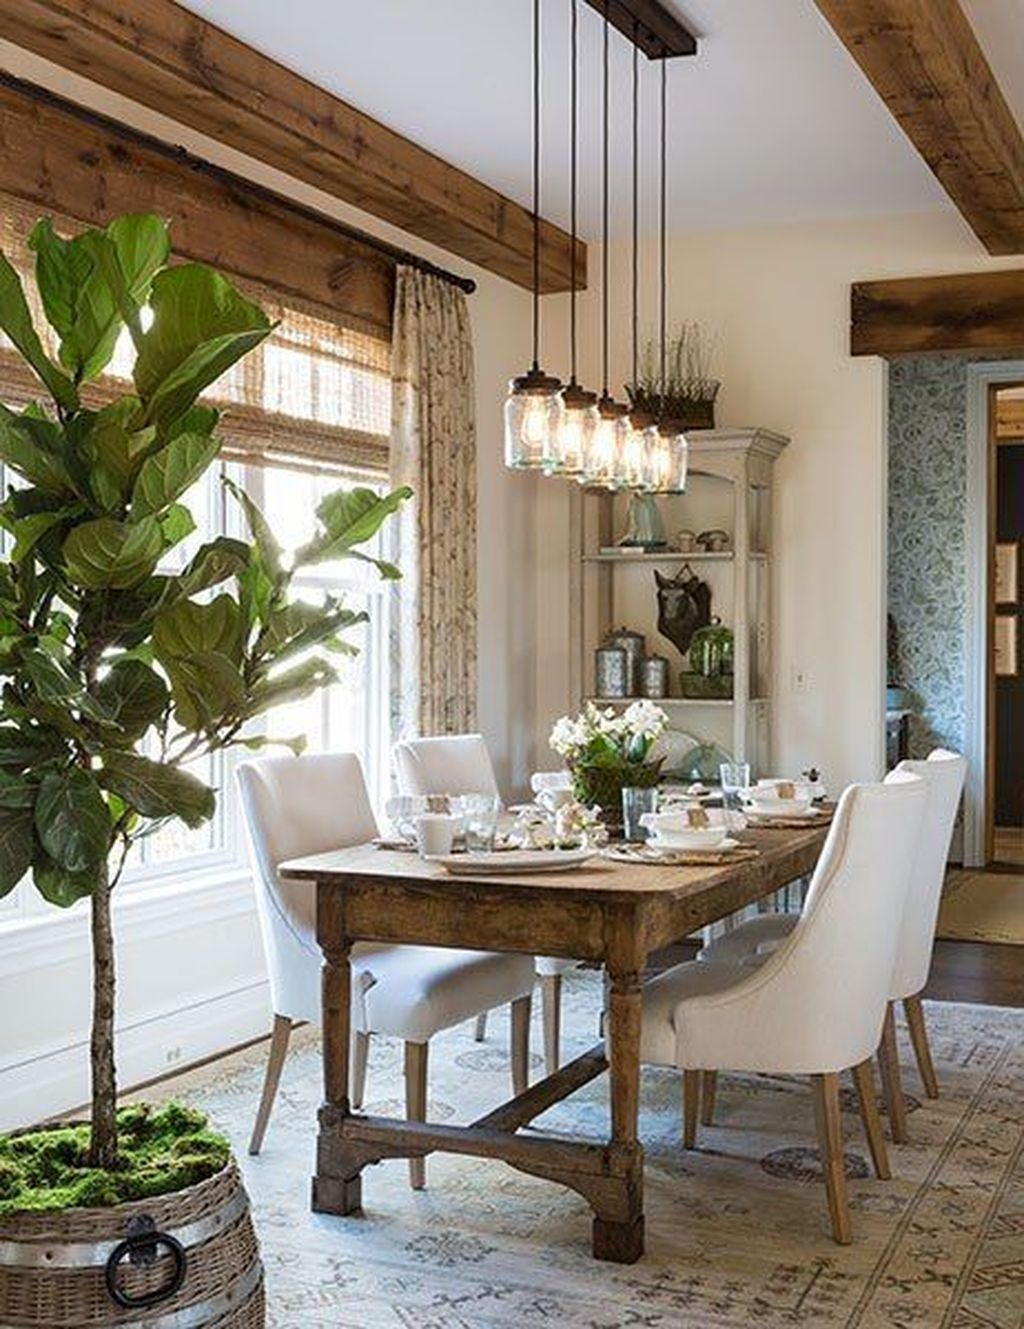 Awesome 30 Modern Farmhouse Dining Room Decor Ideas FarmhouseDiningRoomDecor